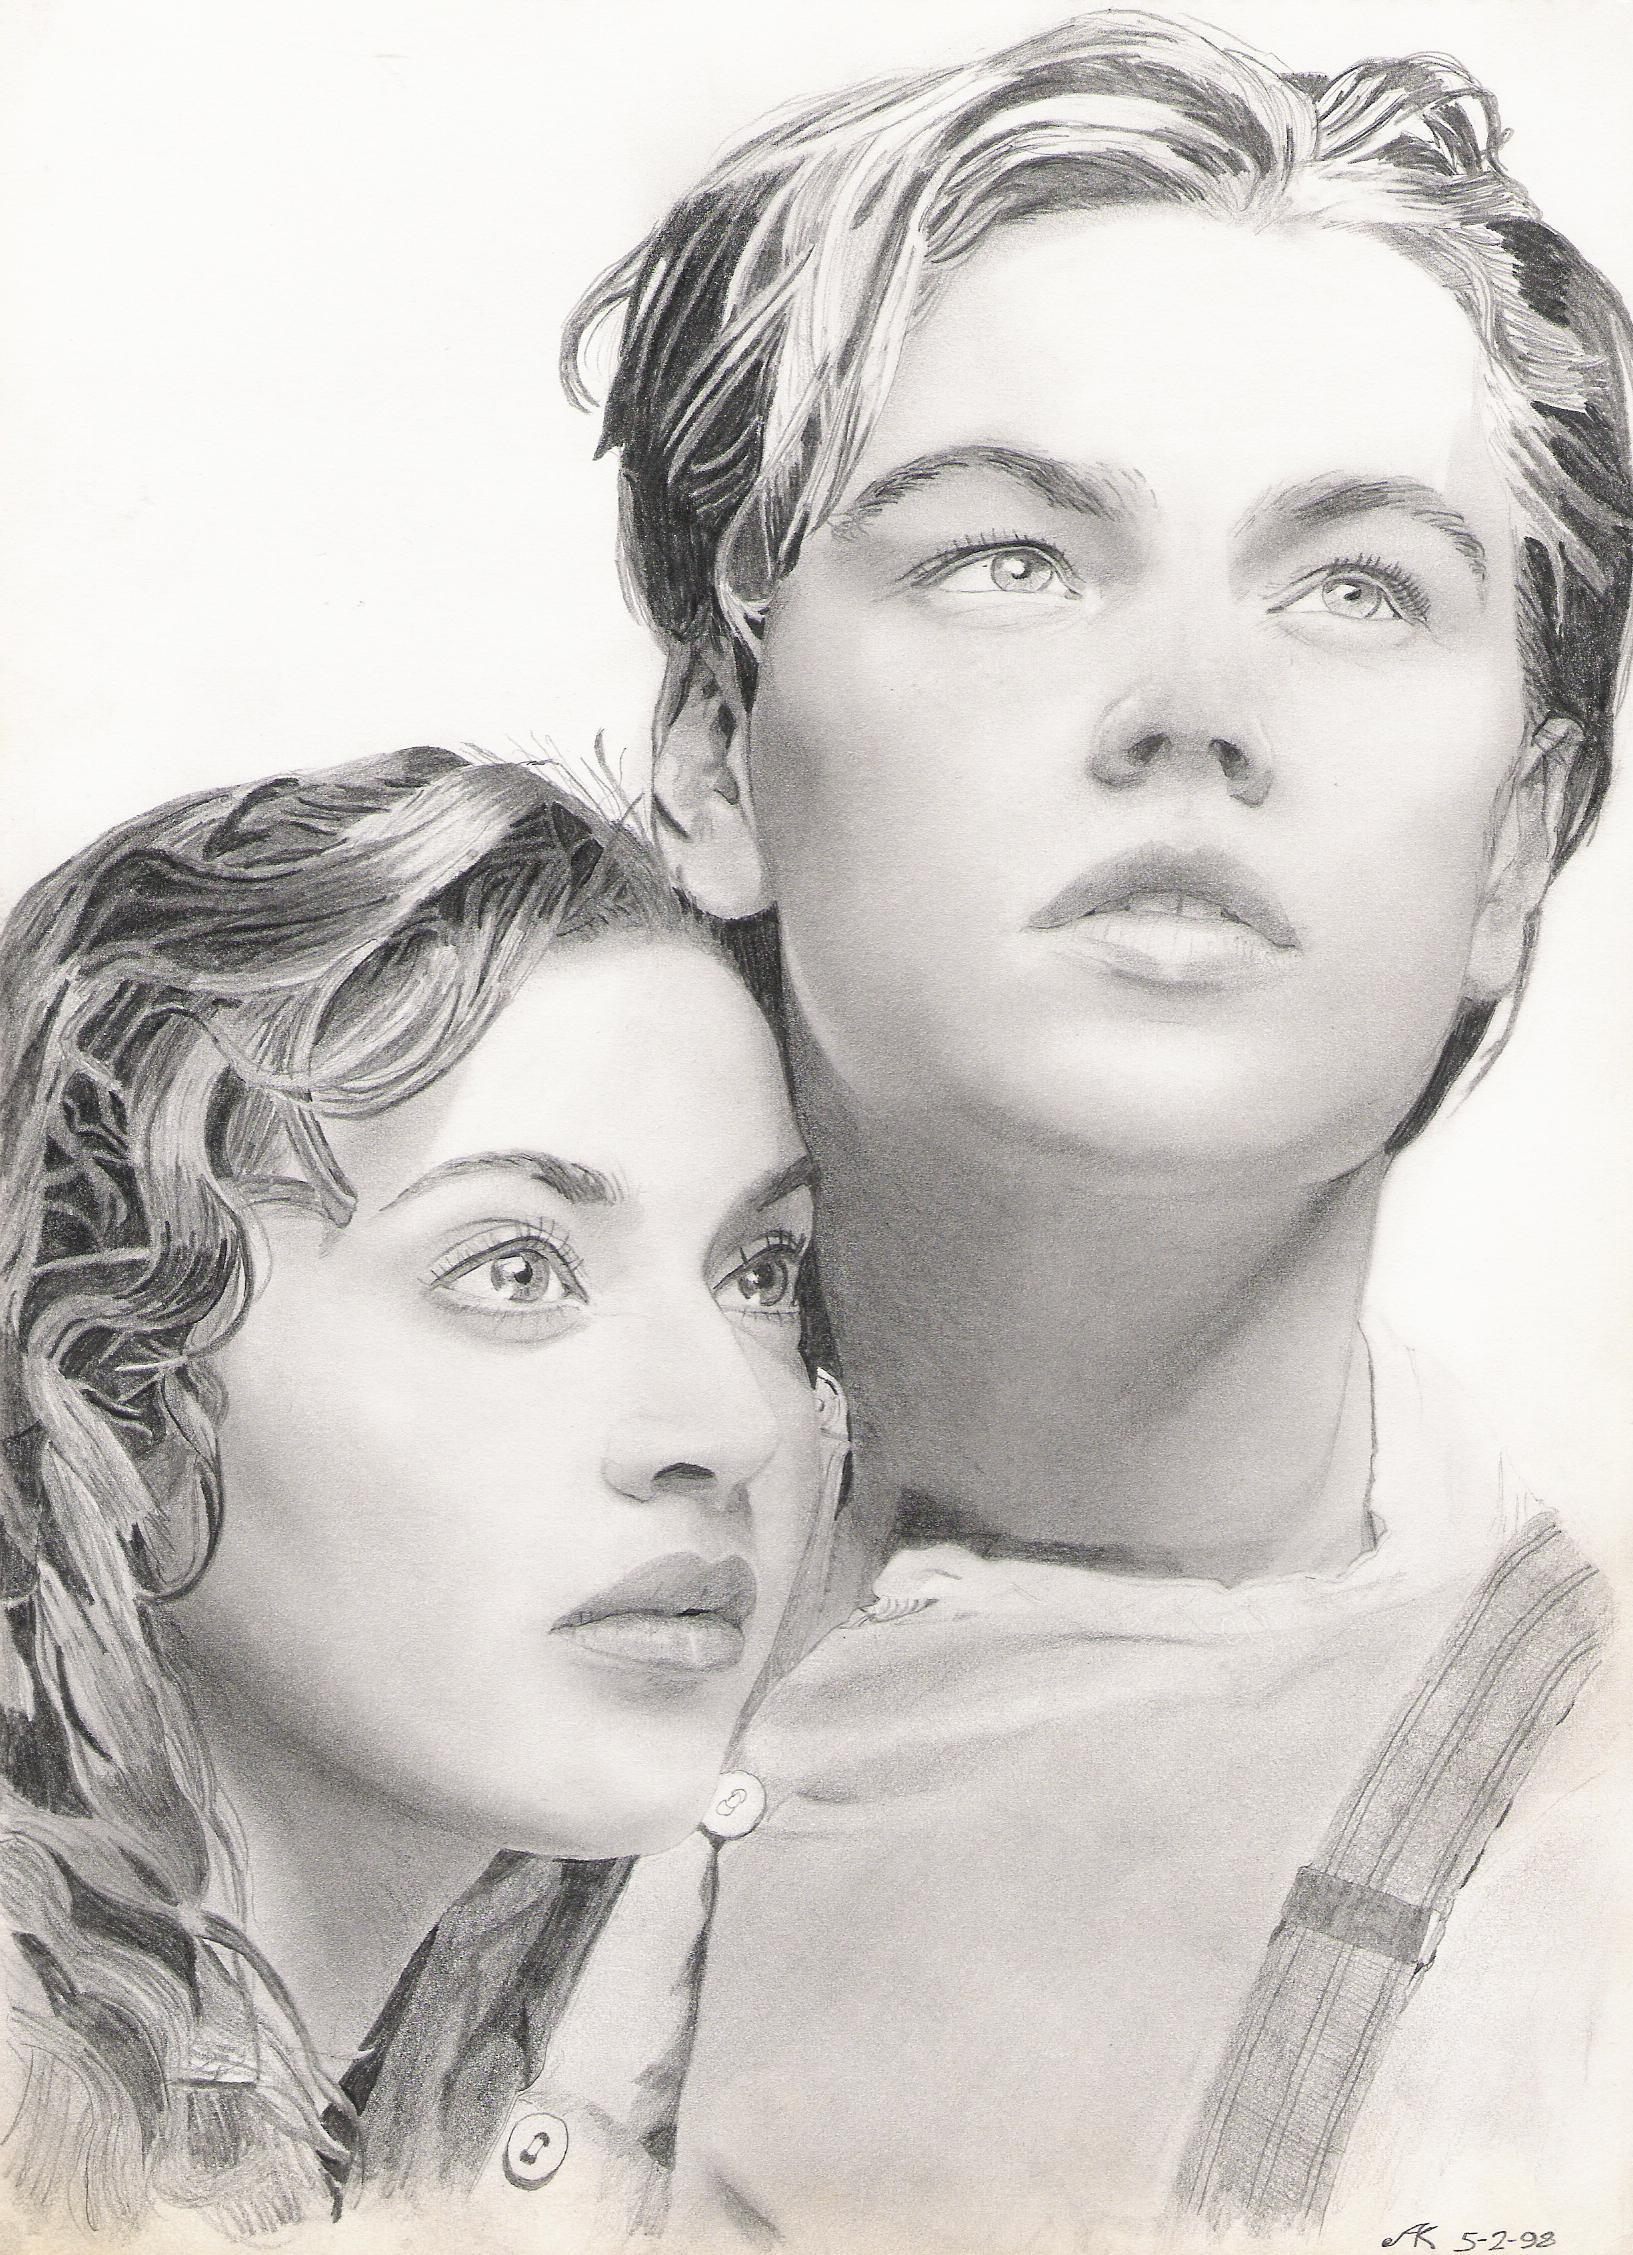 Rose-and-Jack-drawing-titanic-movie-10400857-1633-2255